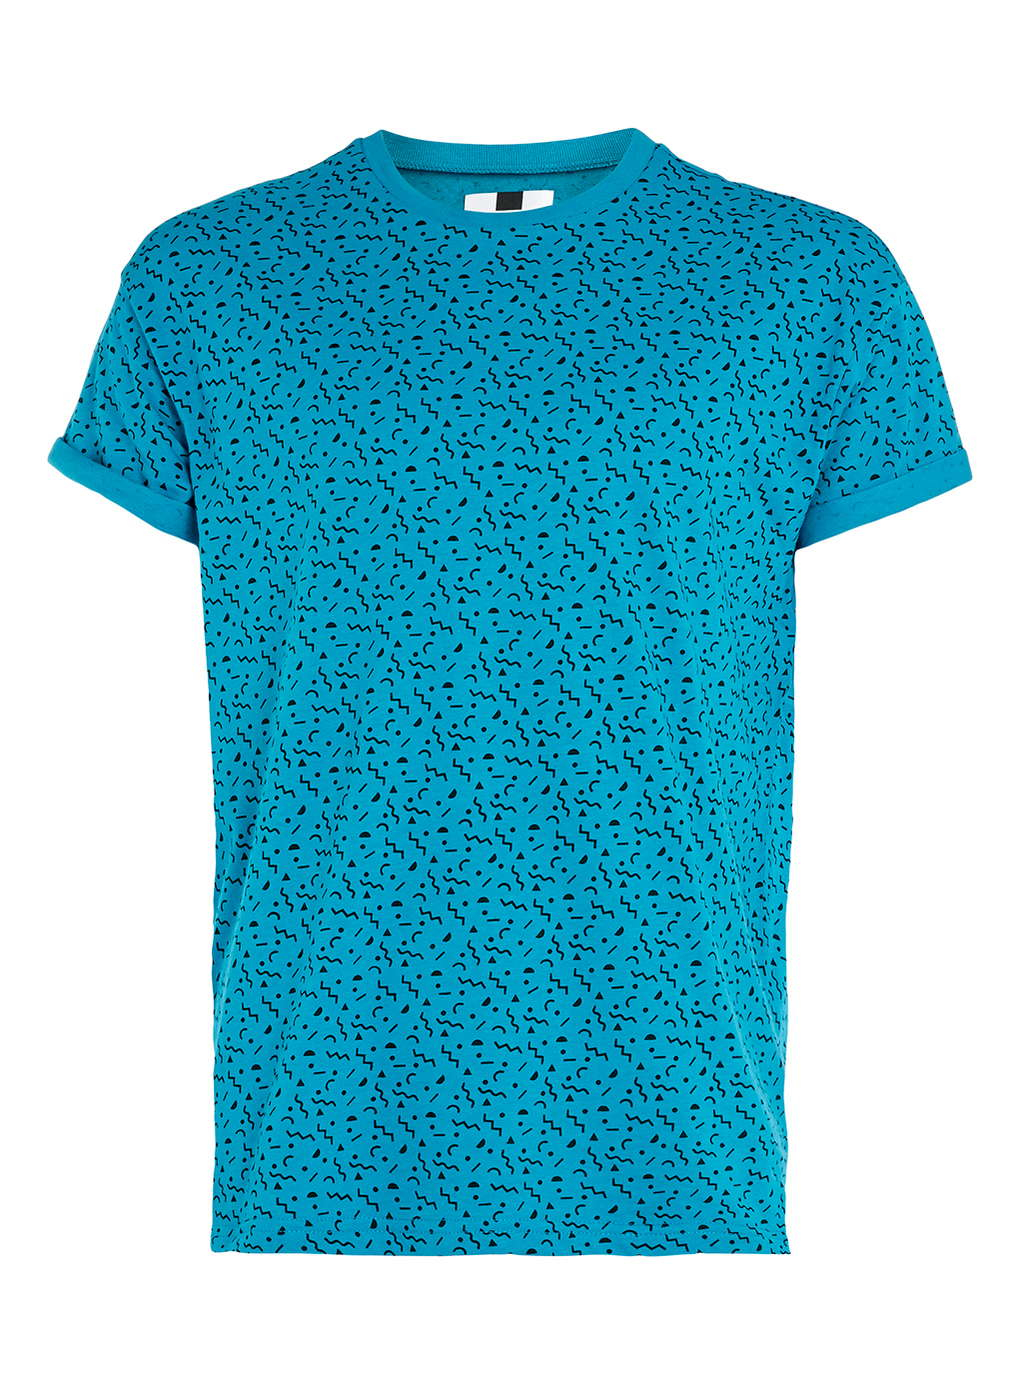 Lac turquoise pattern t shirt in blue for men green lyst for Aqua blue mens dress shirt